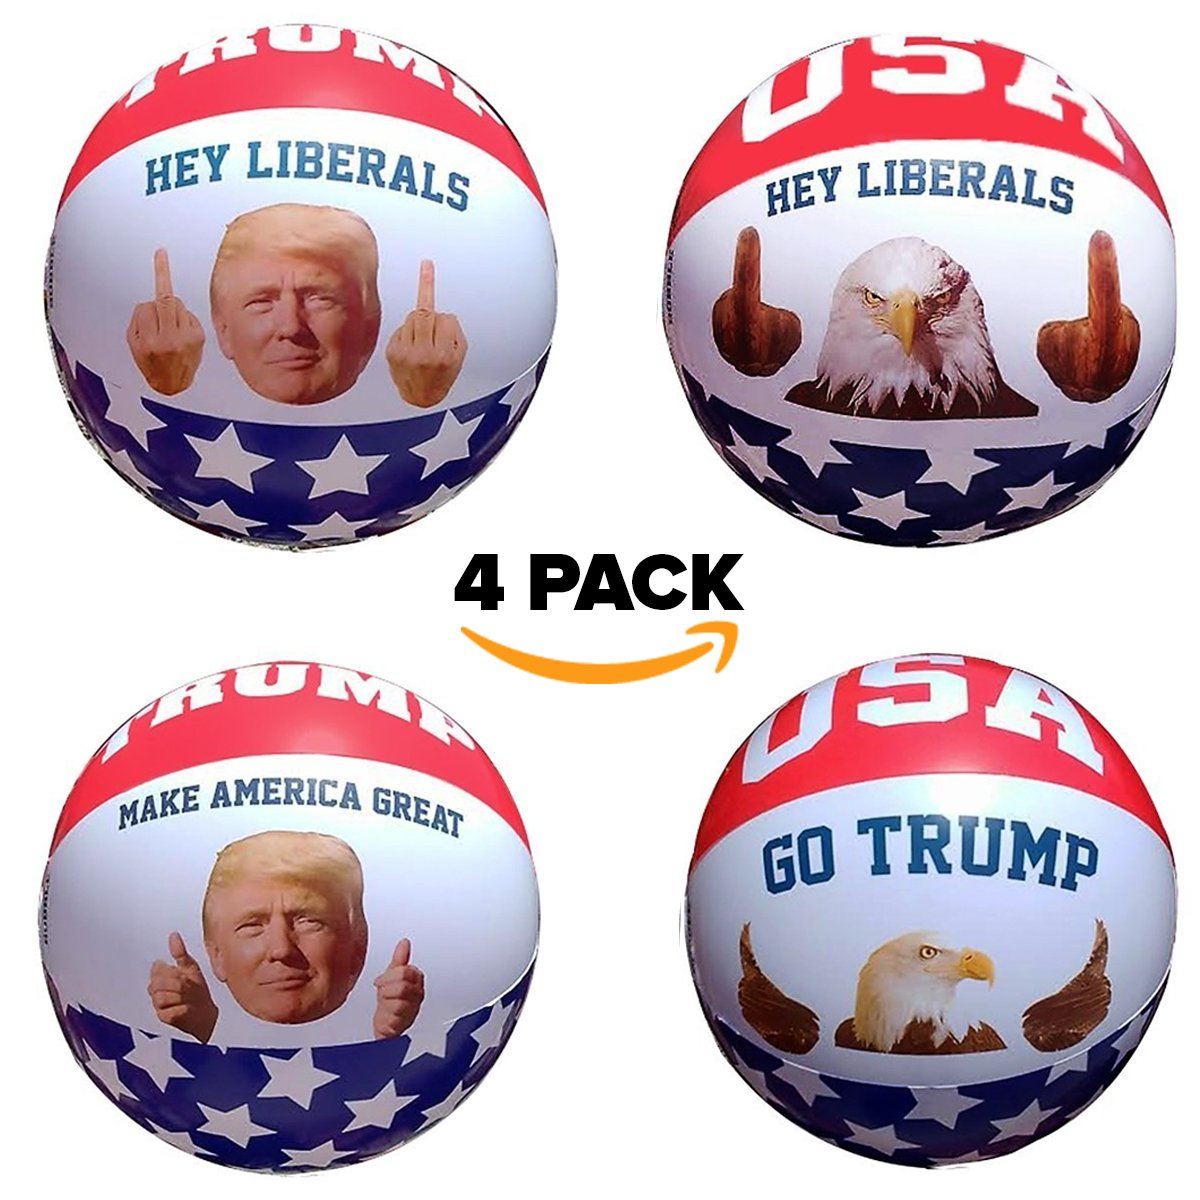 Inflatable Beach Ball Pool Toy: 4 Pack President Donald Trump & American Eagle Beach Ball Set Easy To Inflate USA Patriotic Thumbs Up & Middle Finger Ball  Amazing Funny Pool Toys For Adults Idea by BobbleFingers